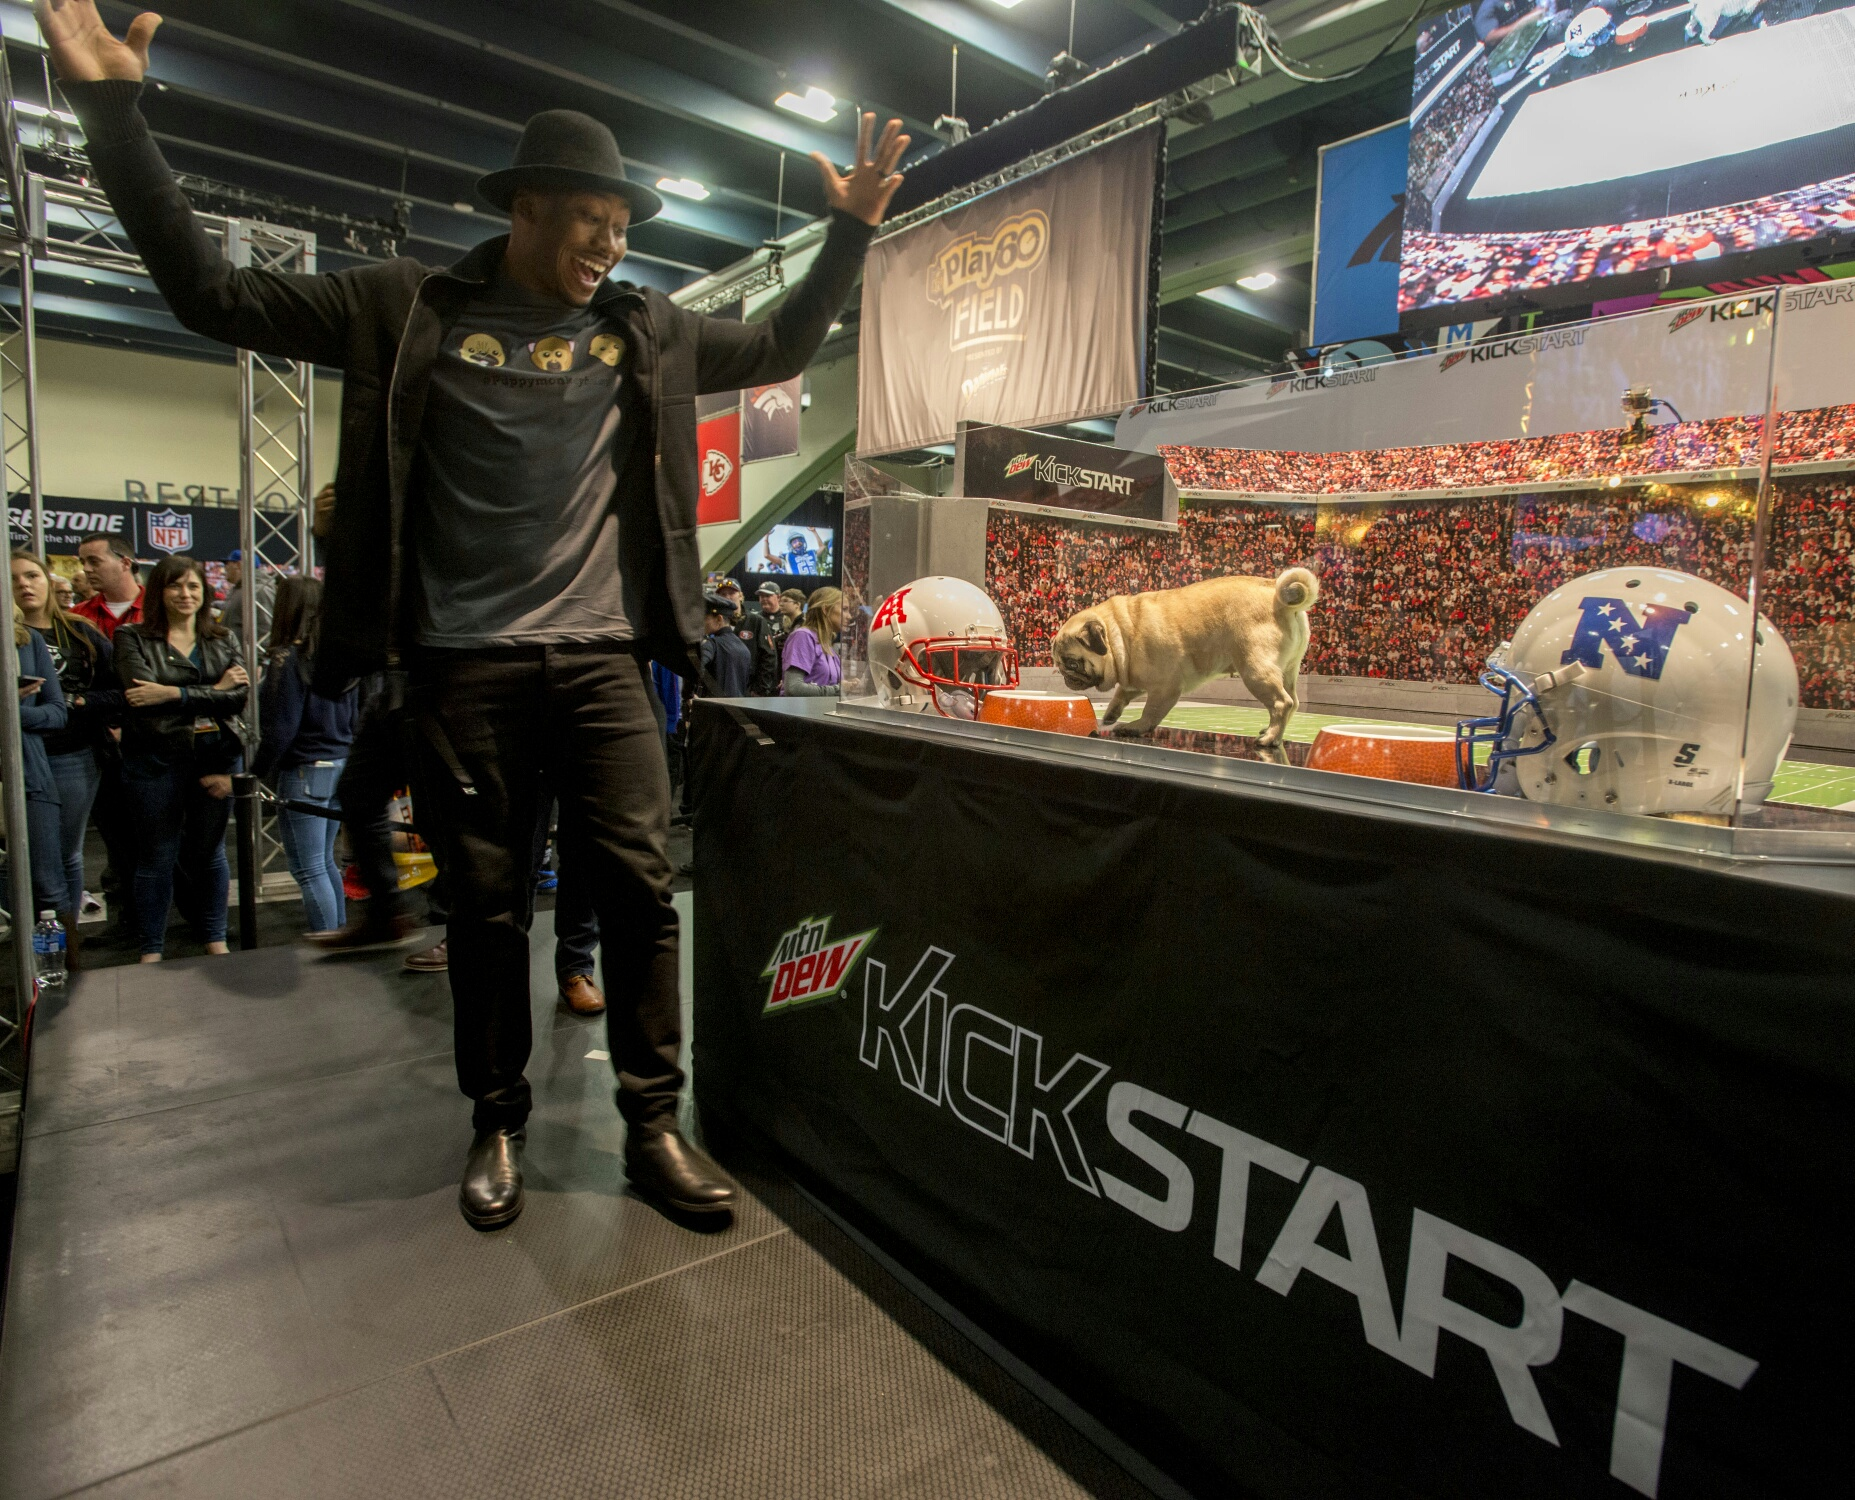 Star wide receiver Brandon Marshall moderates the MTN DEW® KICKSTART™ Super Bowl 50 predictions by a puppy, a monkey and a baby at the NFL Experience.